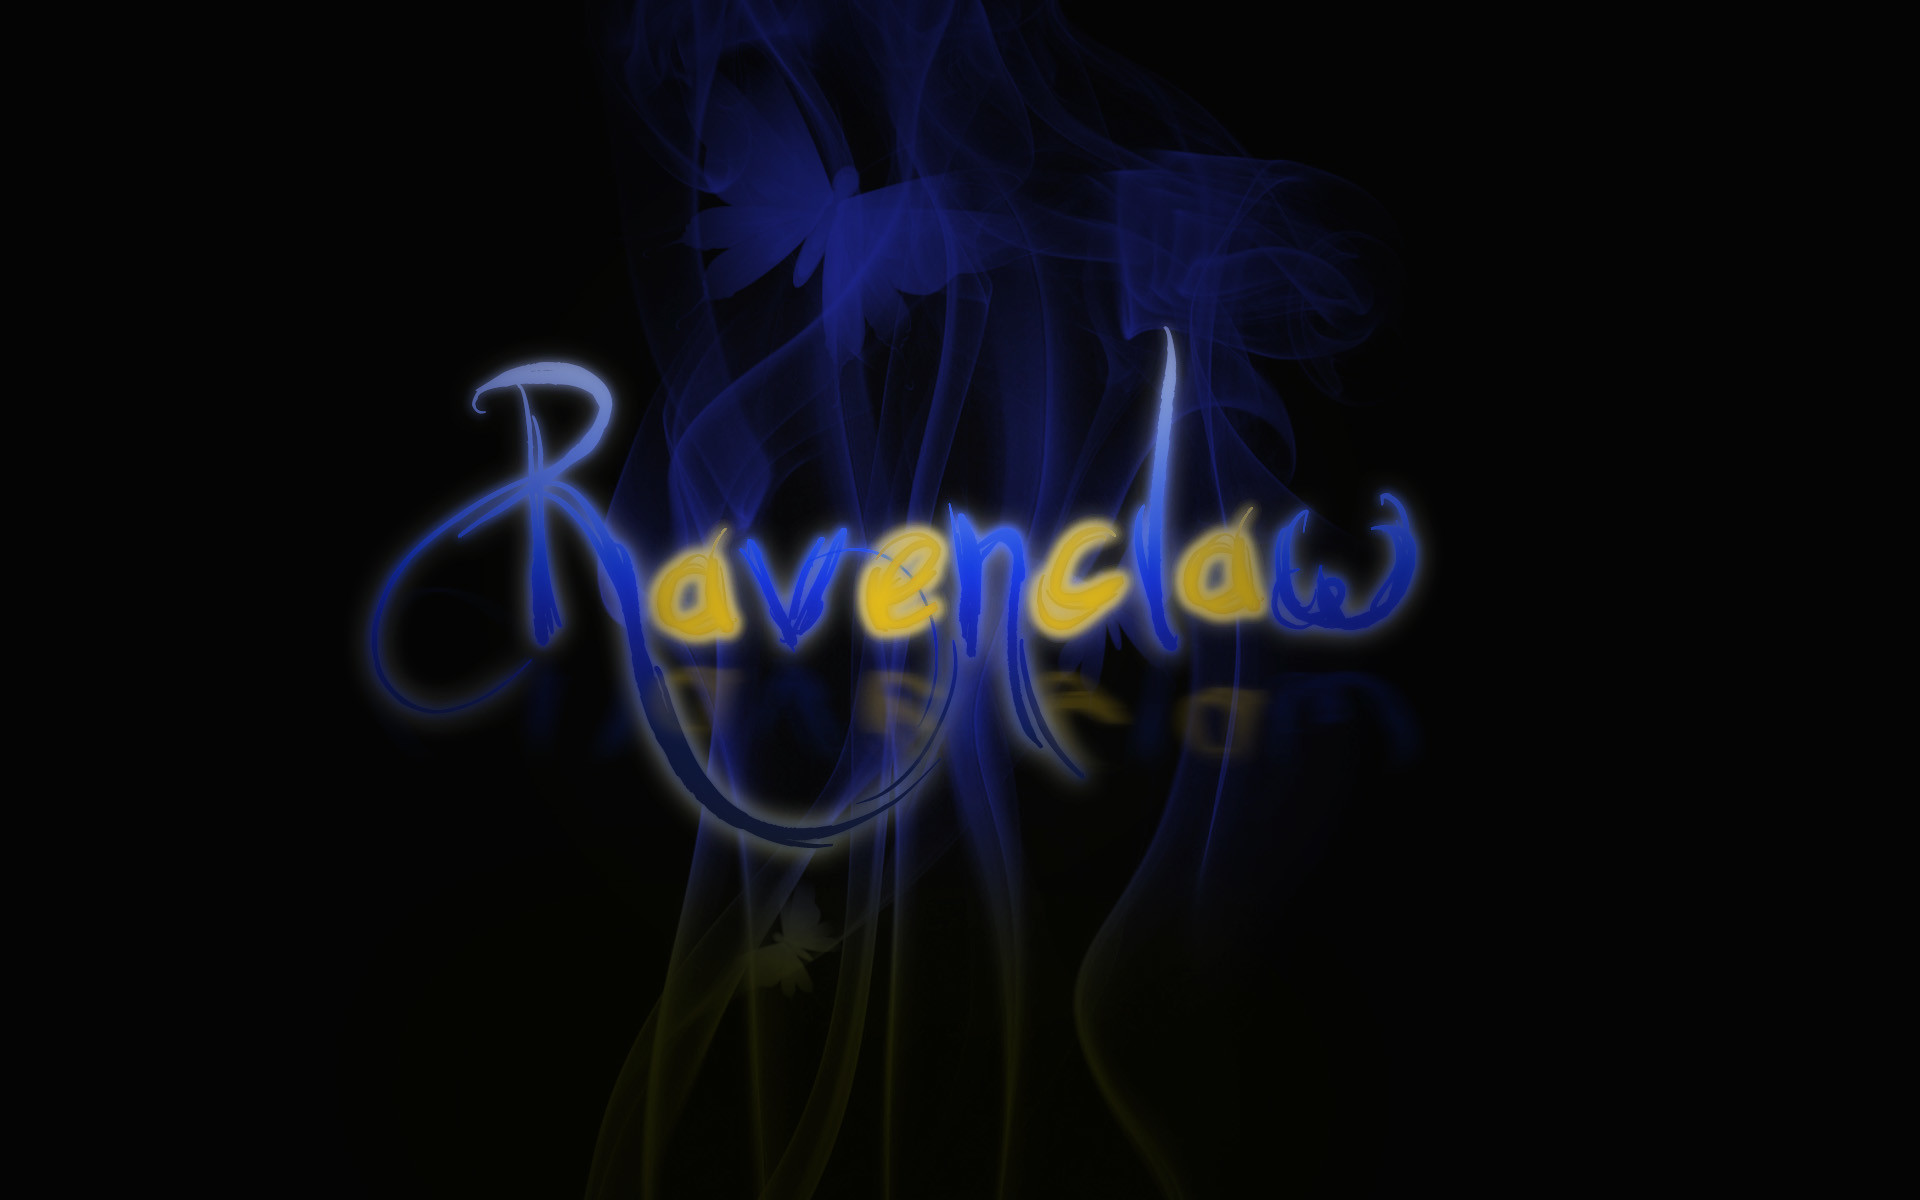 Harry Potter Iphone Wallpaper Ravenclaw Ravenclaw wallpaper by